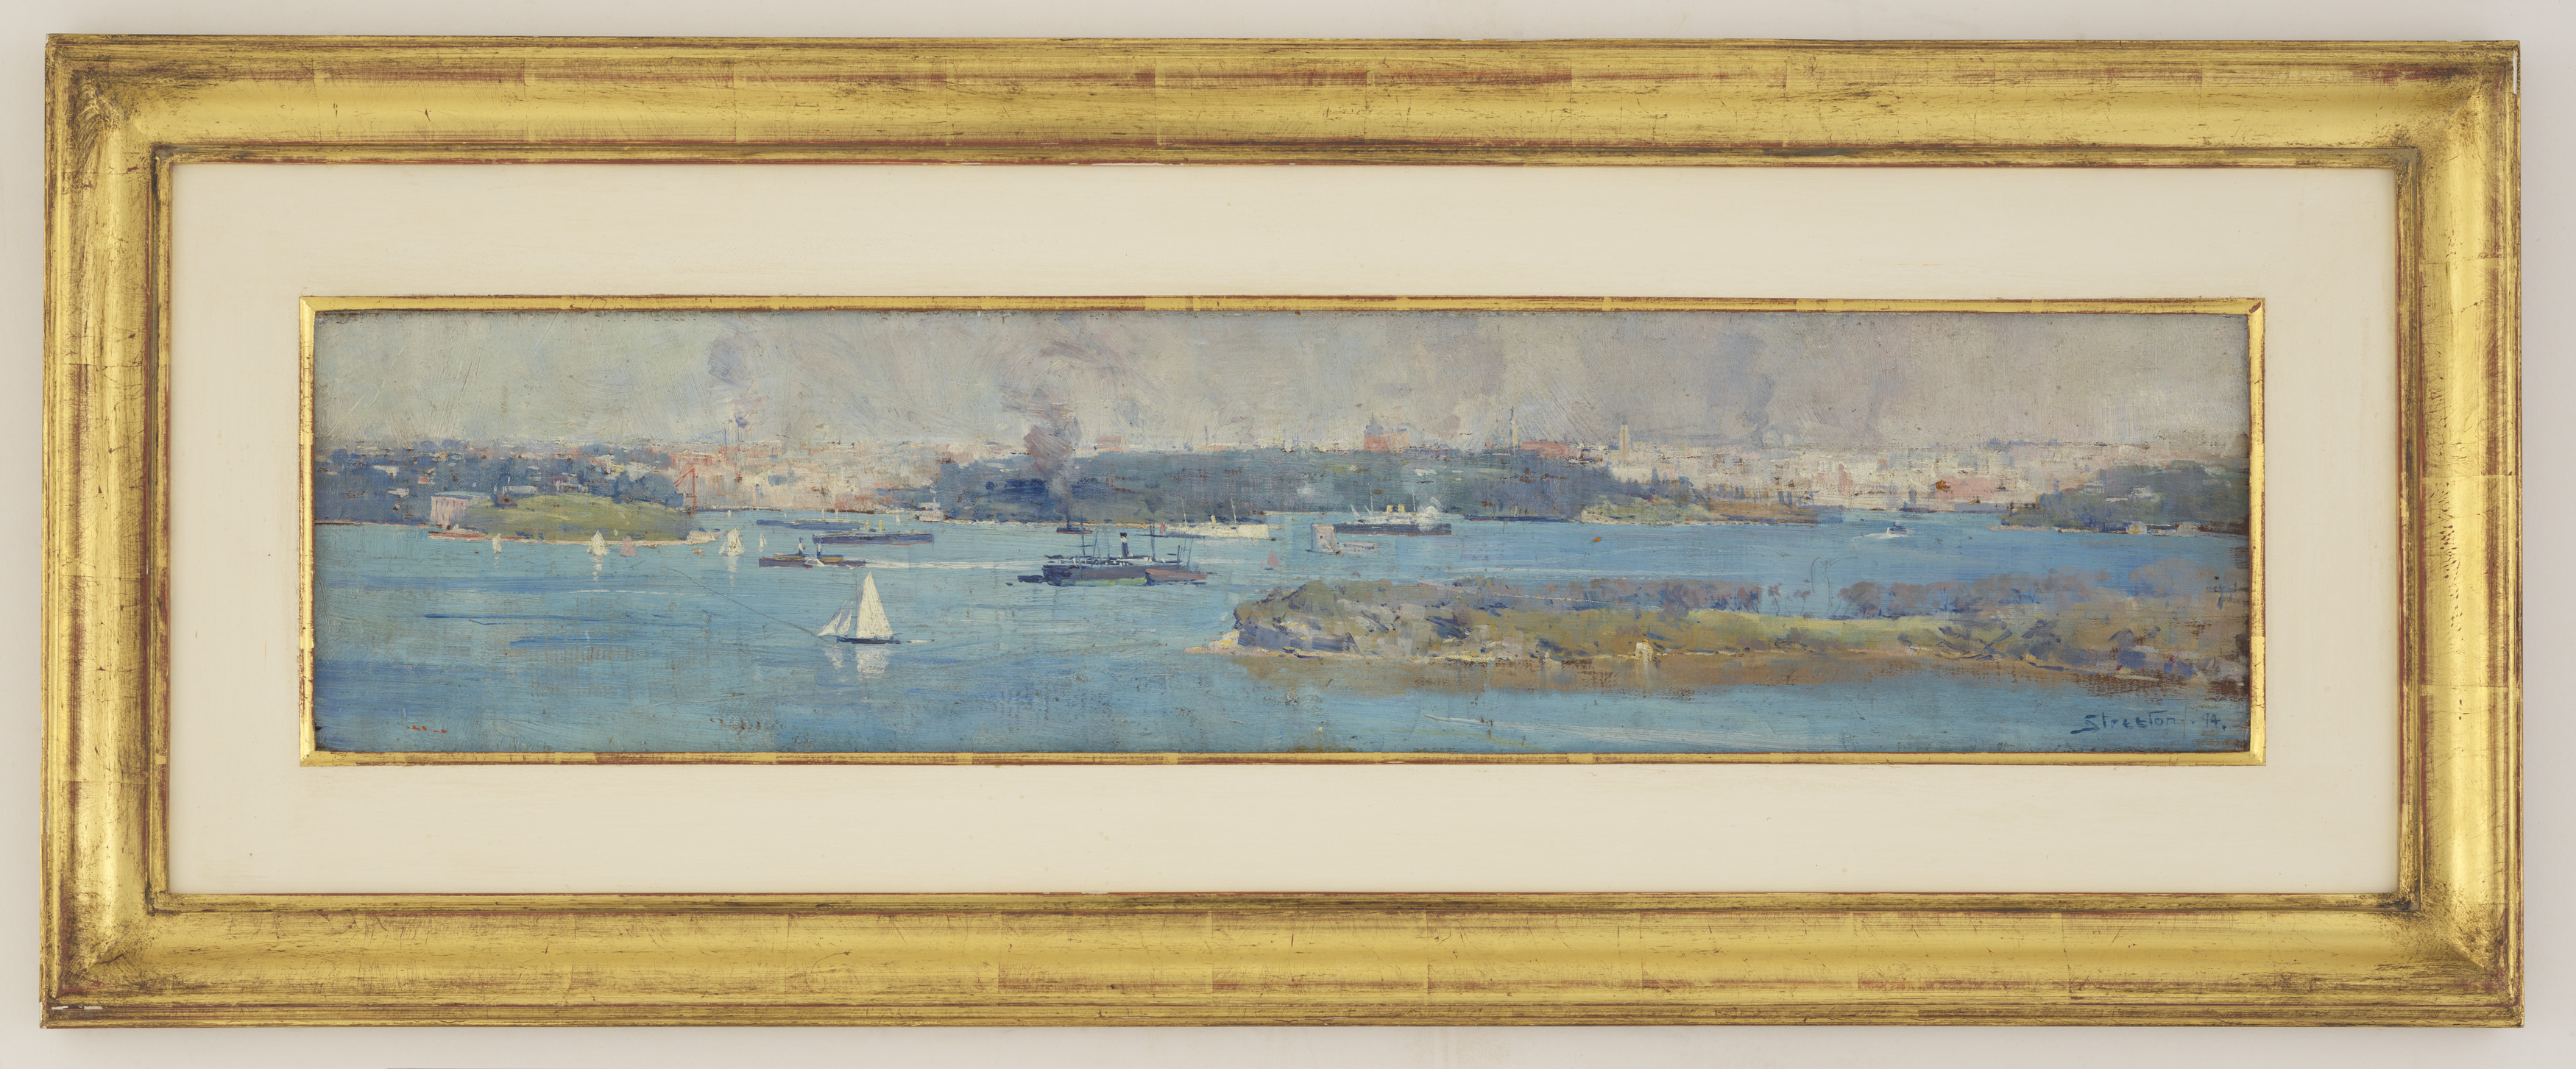 Panoramic view of Sydney Harbour and the city skyline, 1894